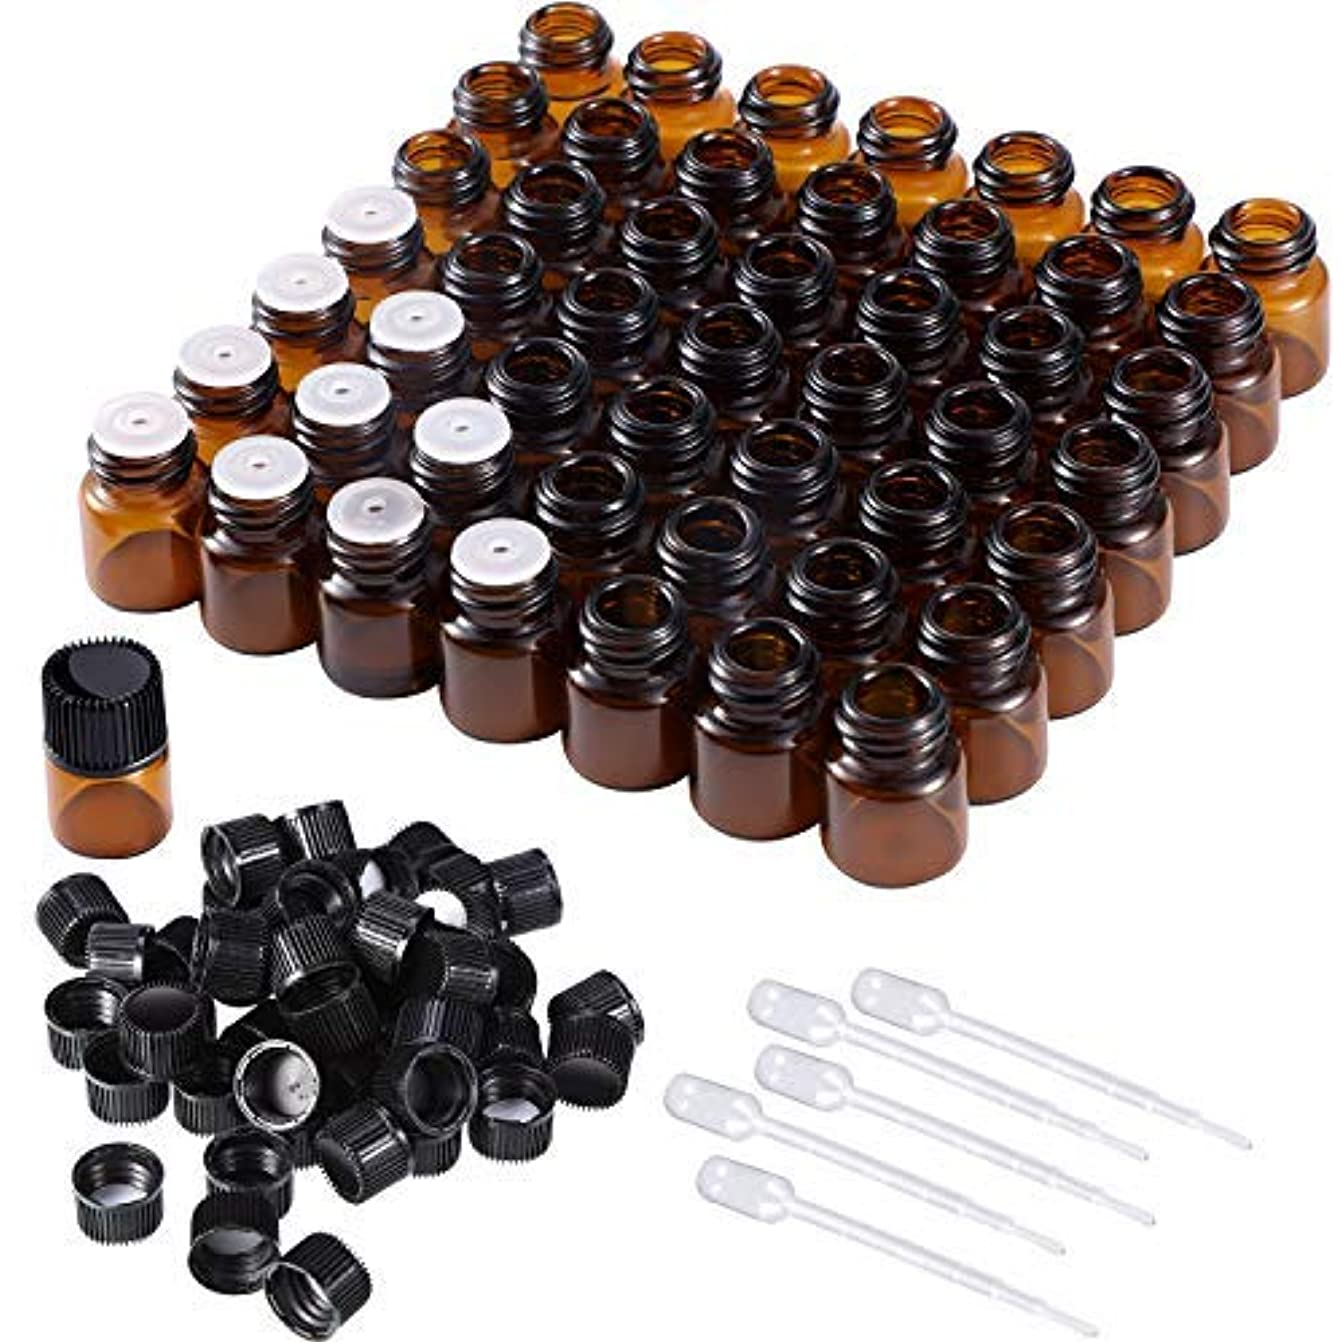 冷蔵する霧谷50 Pieces 1 ml Mini Amber Glass Vial Bottles Essential Oil Bottles with Orifice Reducers Screw Caps and 5 Pieces Droppers for Essential Oils Storage [並行輸入品]